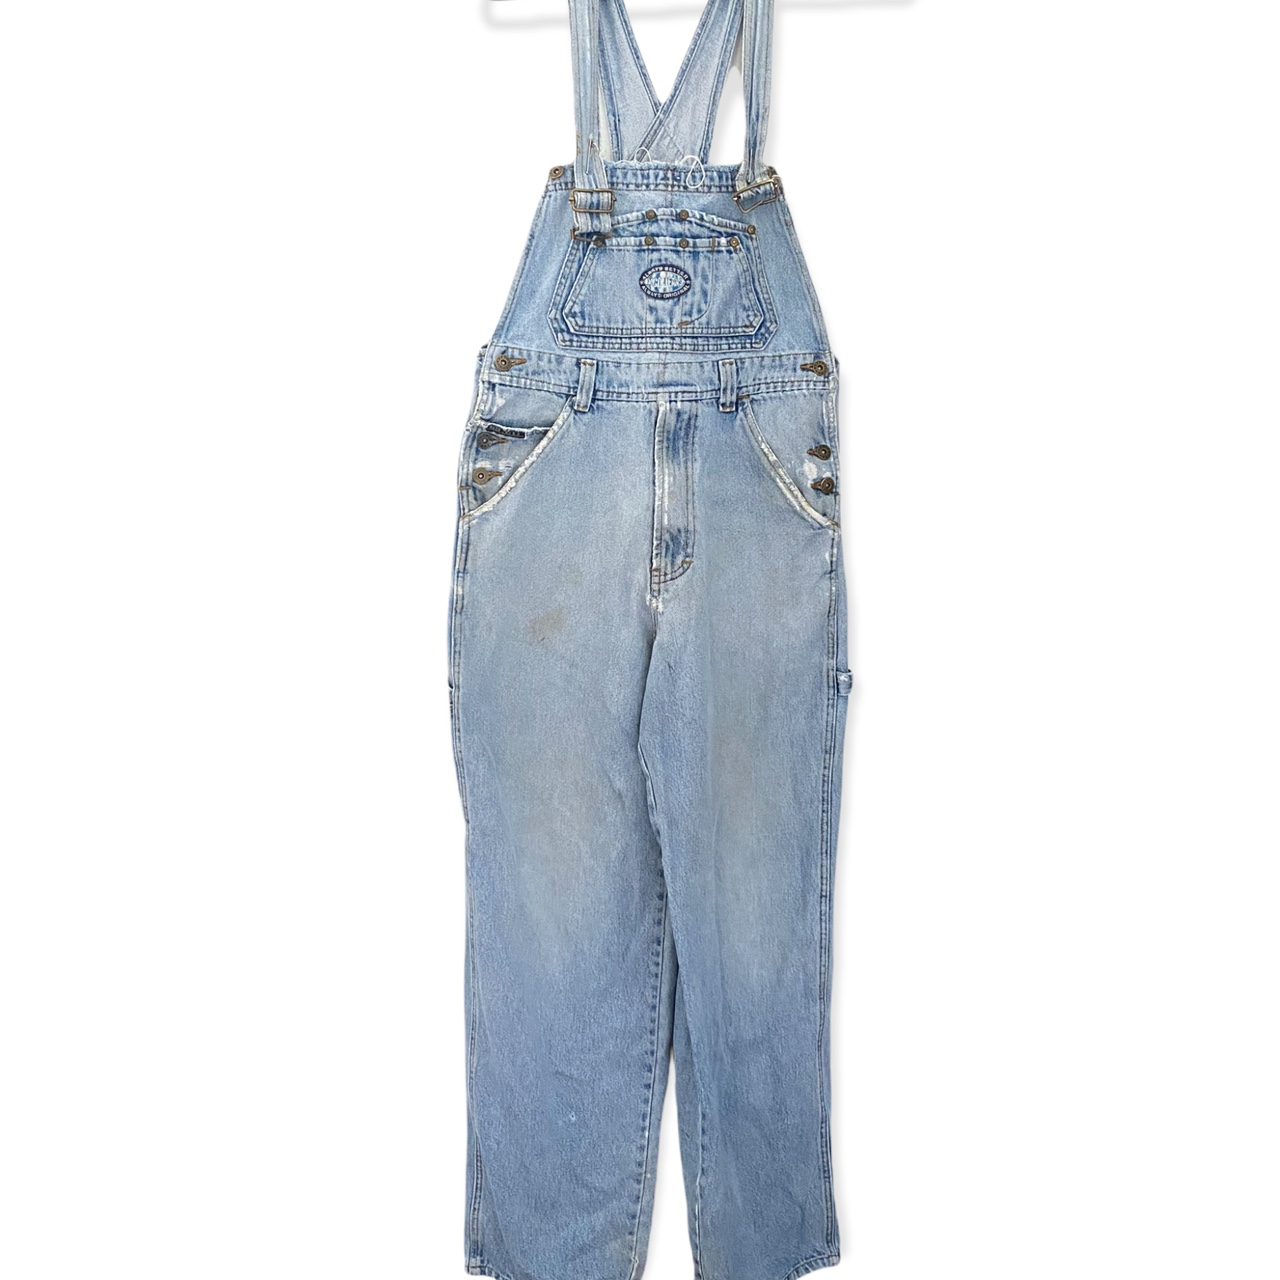 Product Image 1 - Vintage Paco Carpenter Overalls   Light